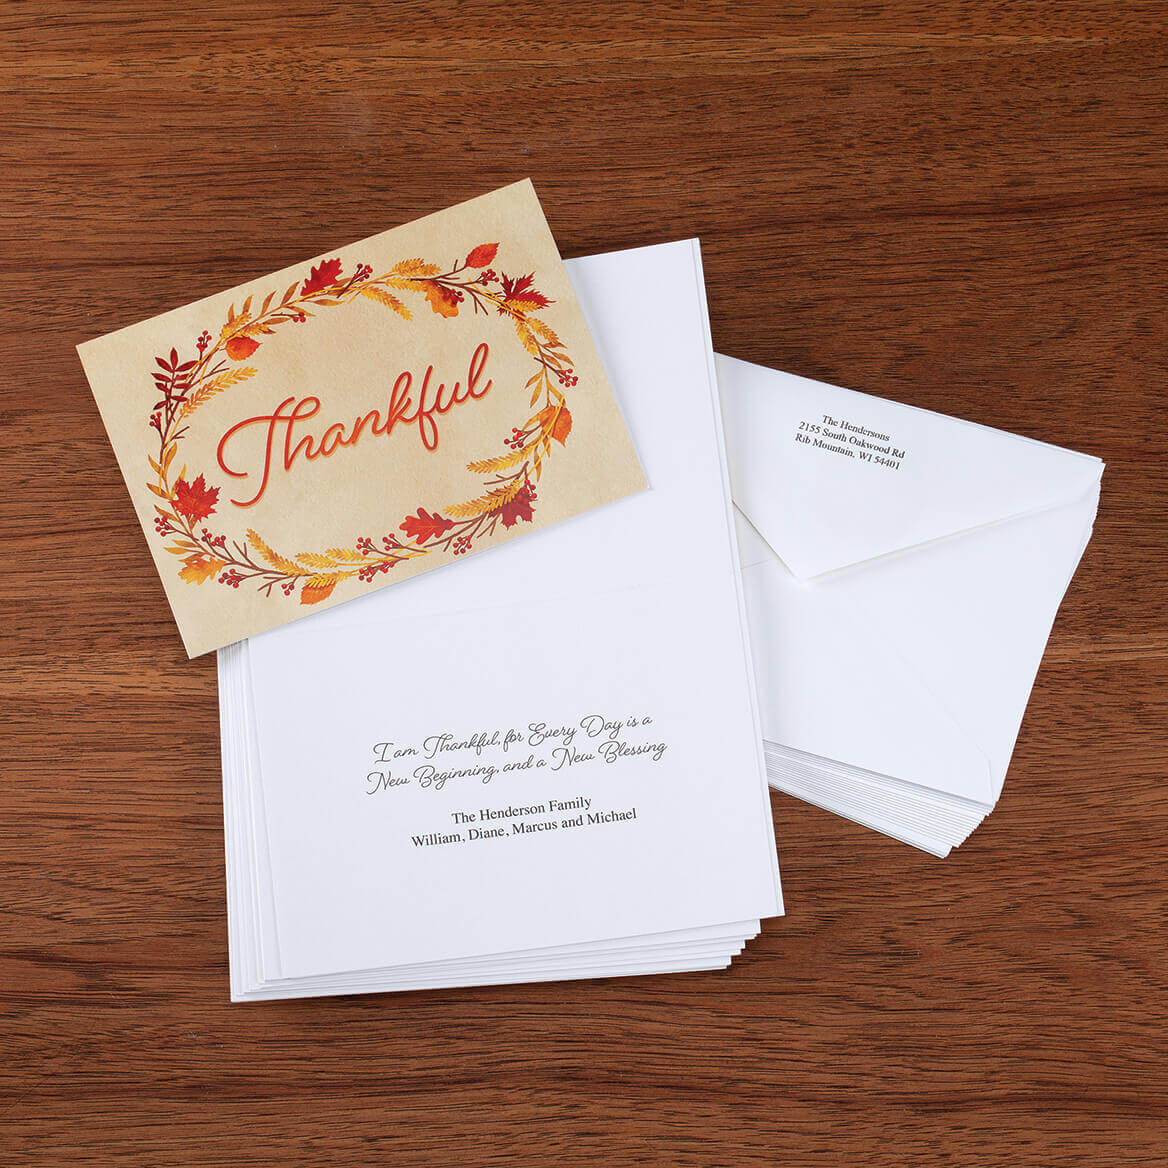 Personalized Thankful Card Set of 20-371158